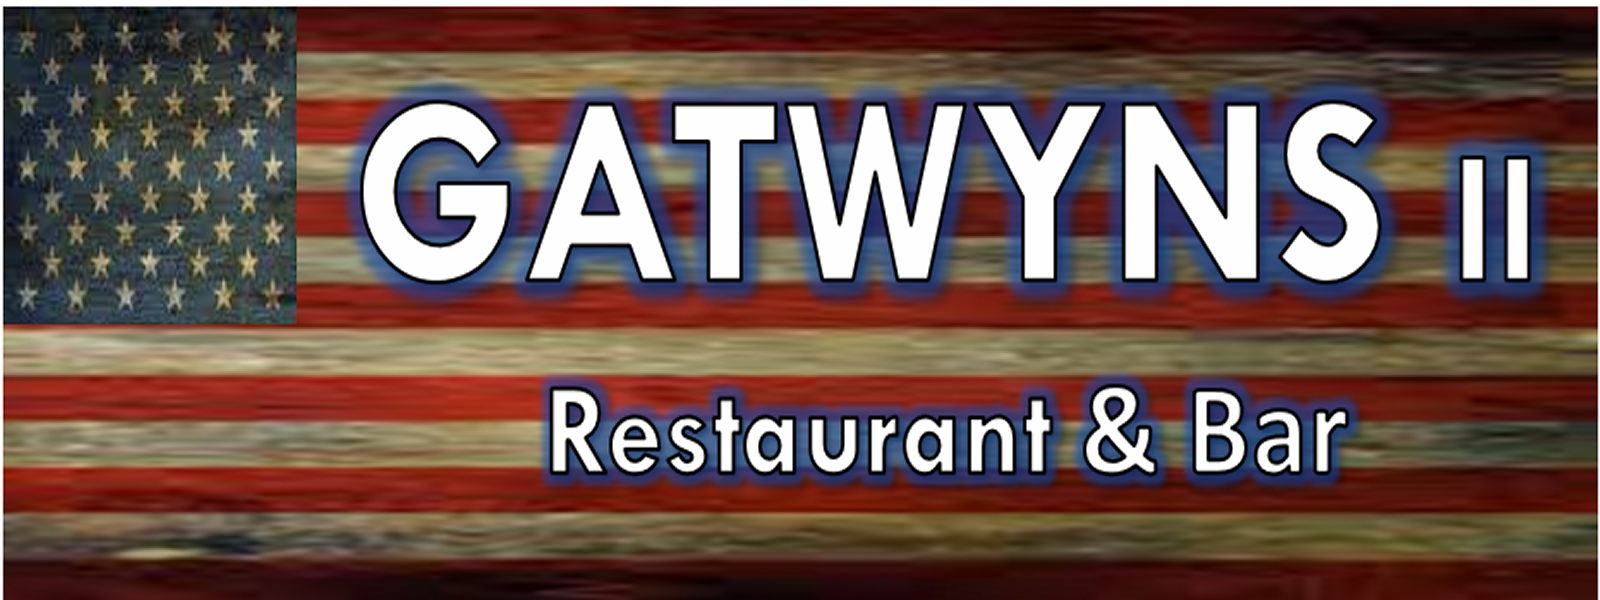 www.gatwyns.com     Morris County's Best for Casual Dining and One of the Best for Steak House, Bar/Nightclub, Sports Bar and Best Burger!!!